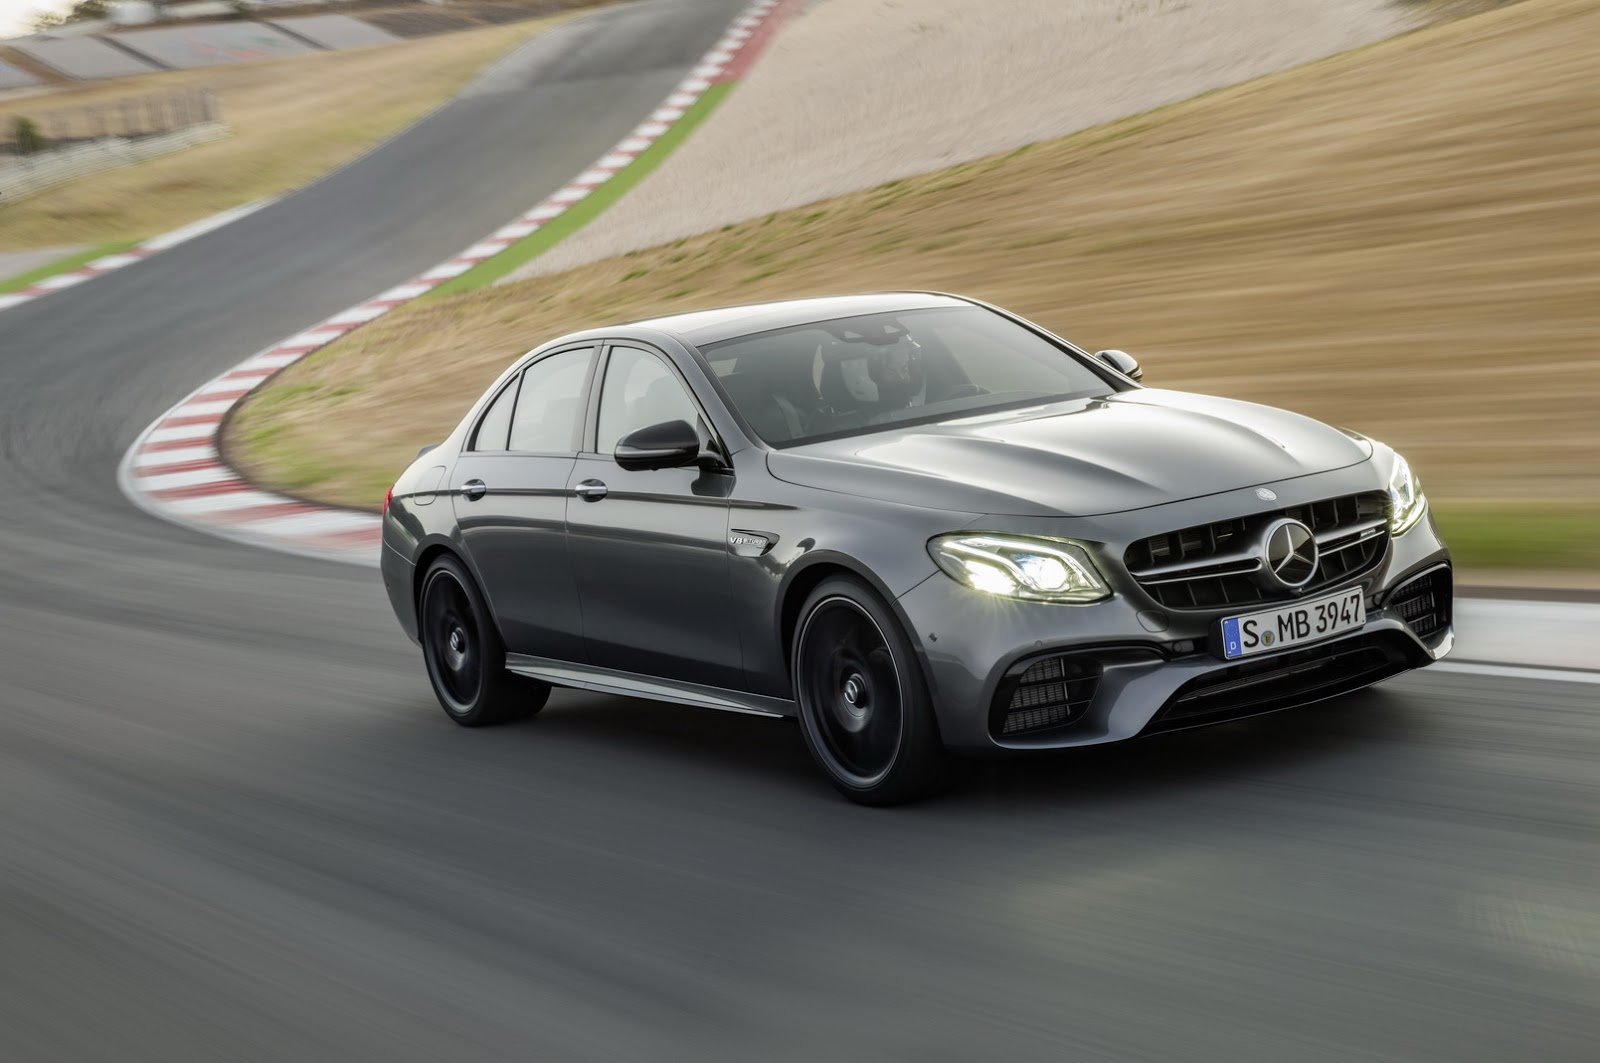 Mercedes e63 amg s et son mode drift plan te for Mercedes benz e63 s amg